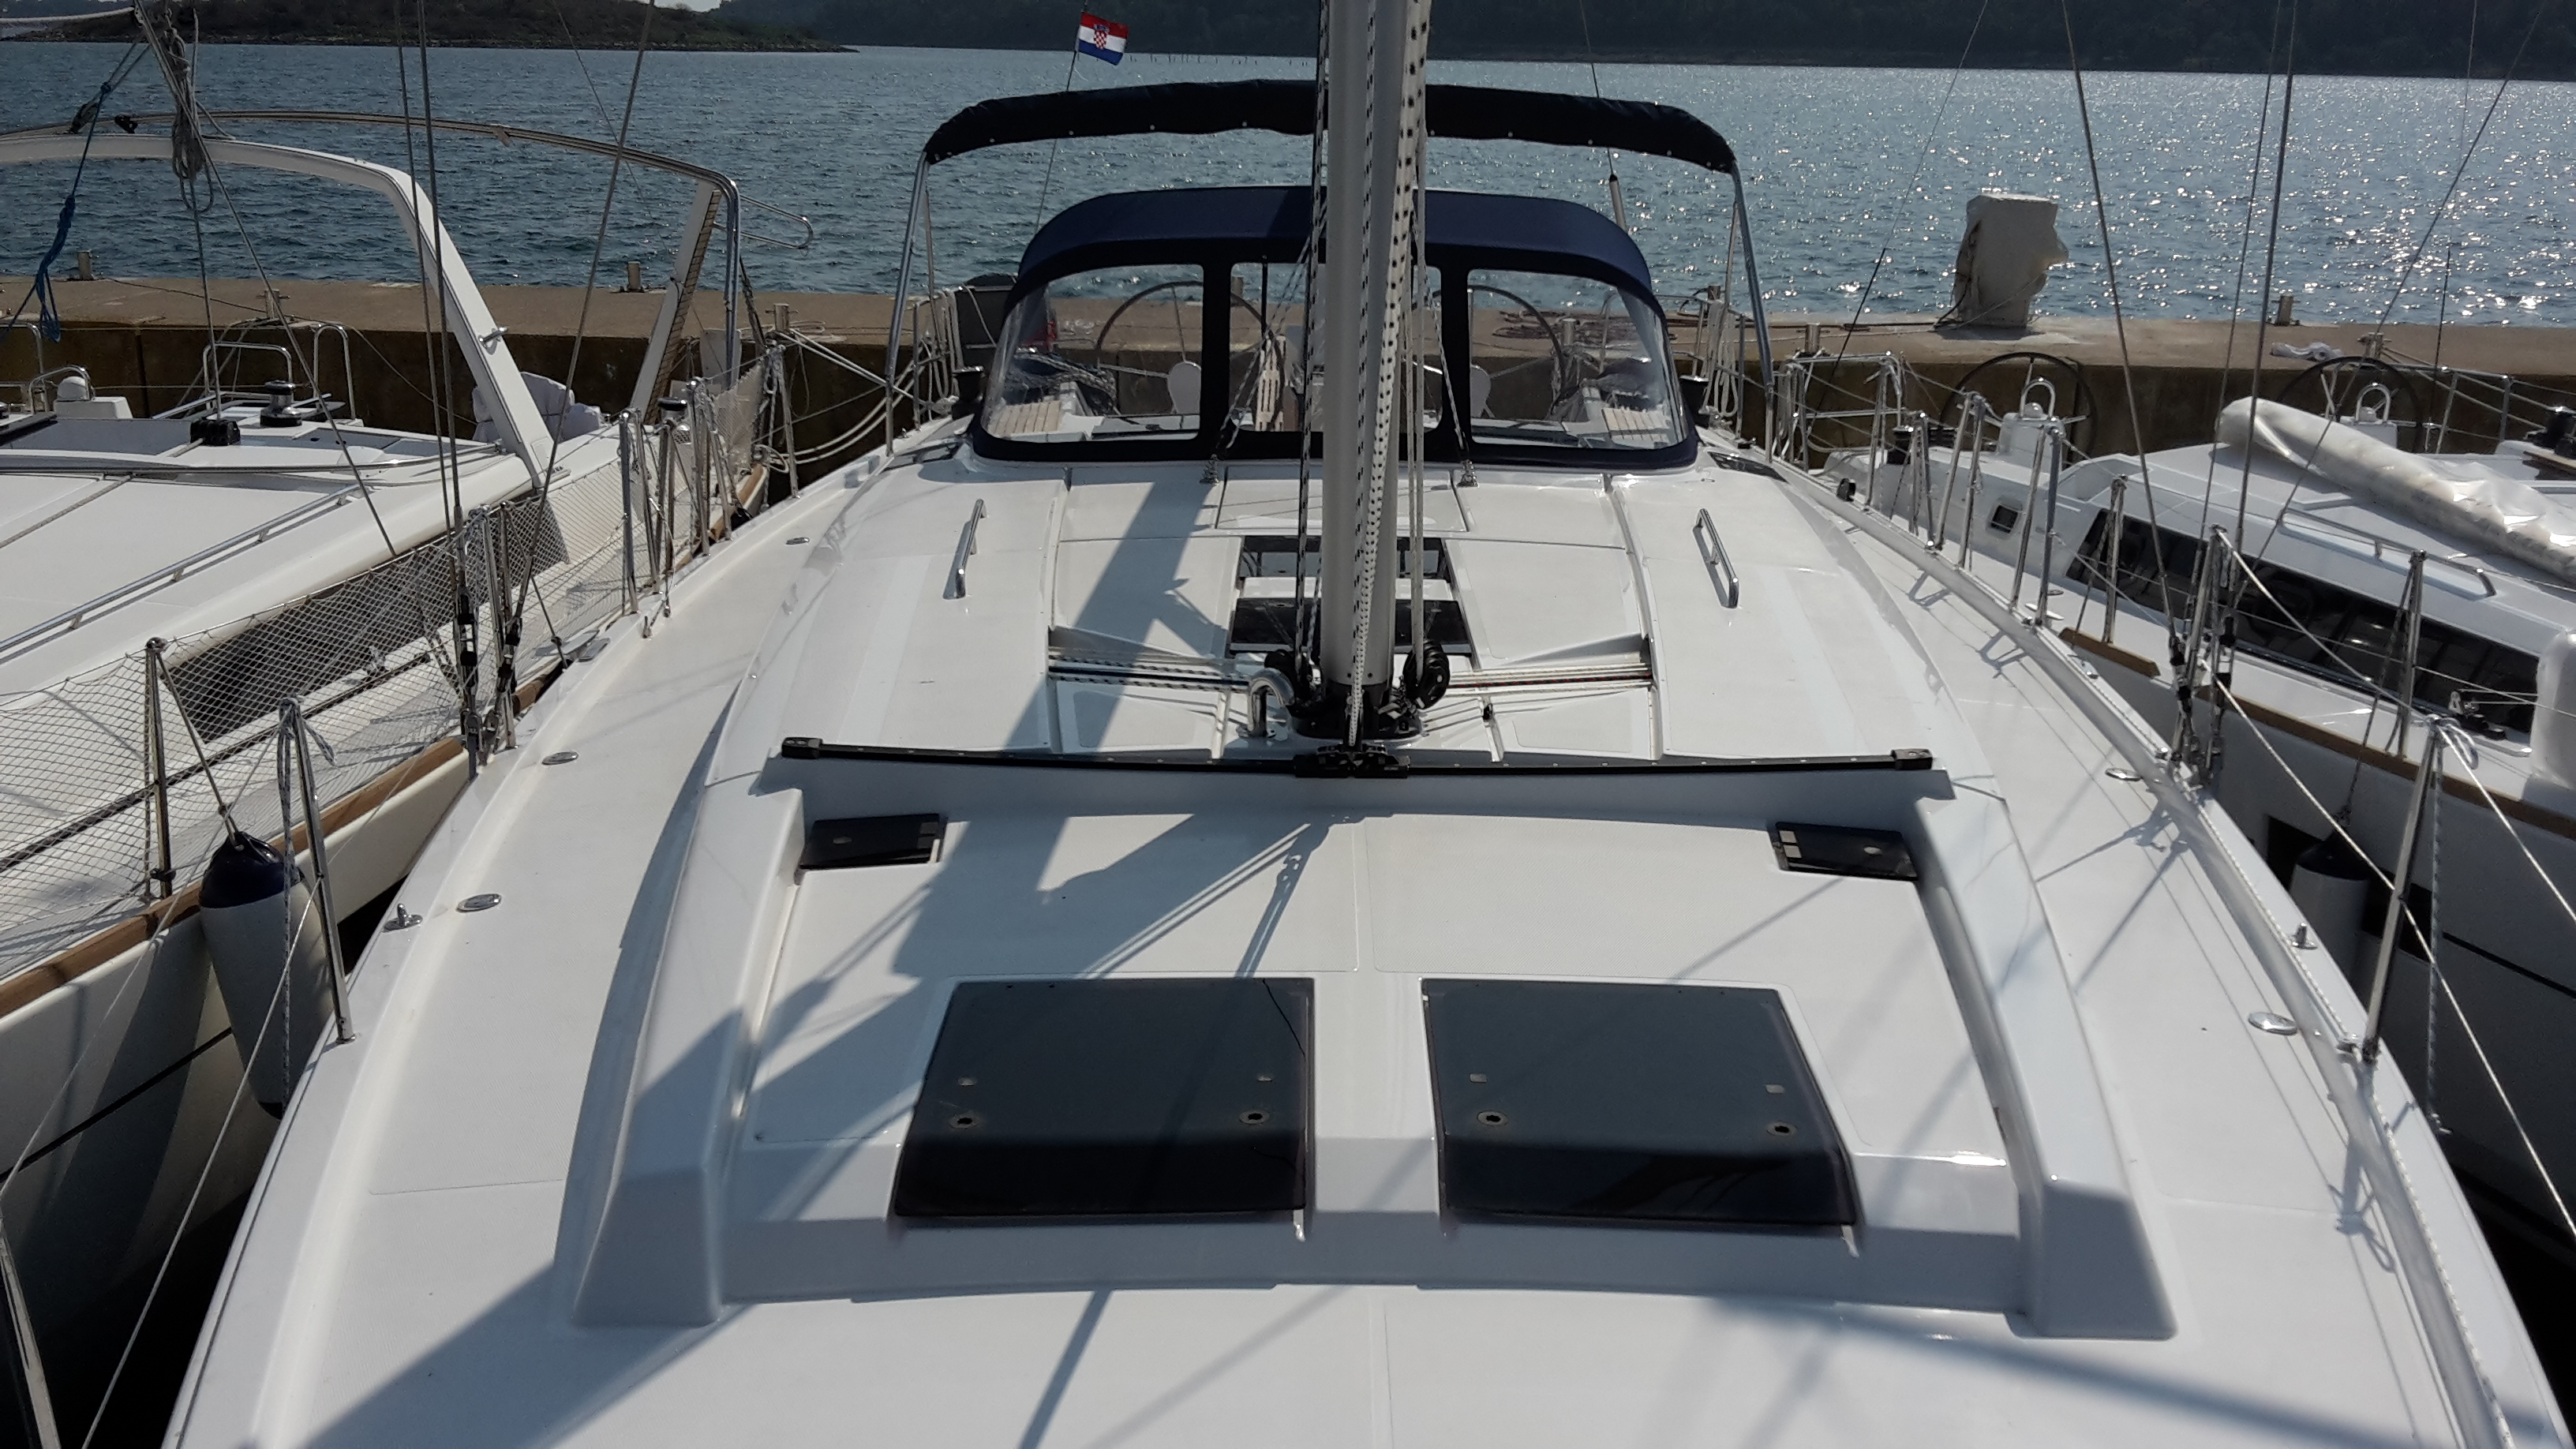 Hanse 505 (Figarola) photo - 6